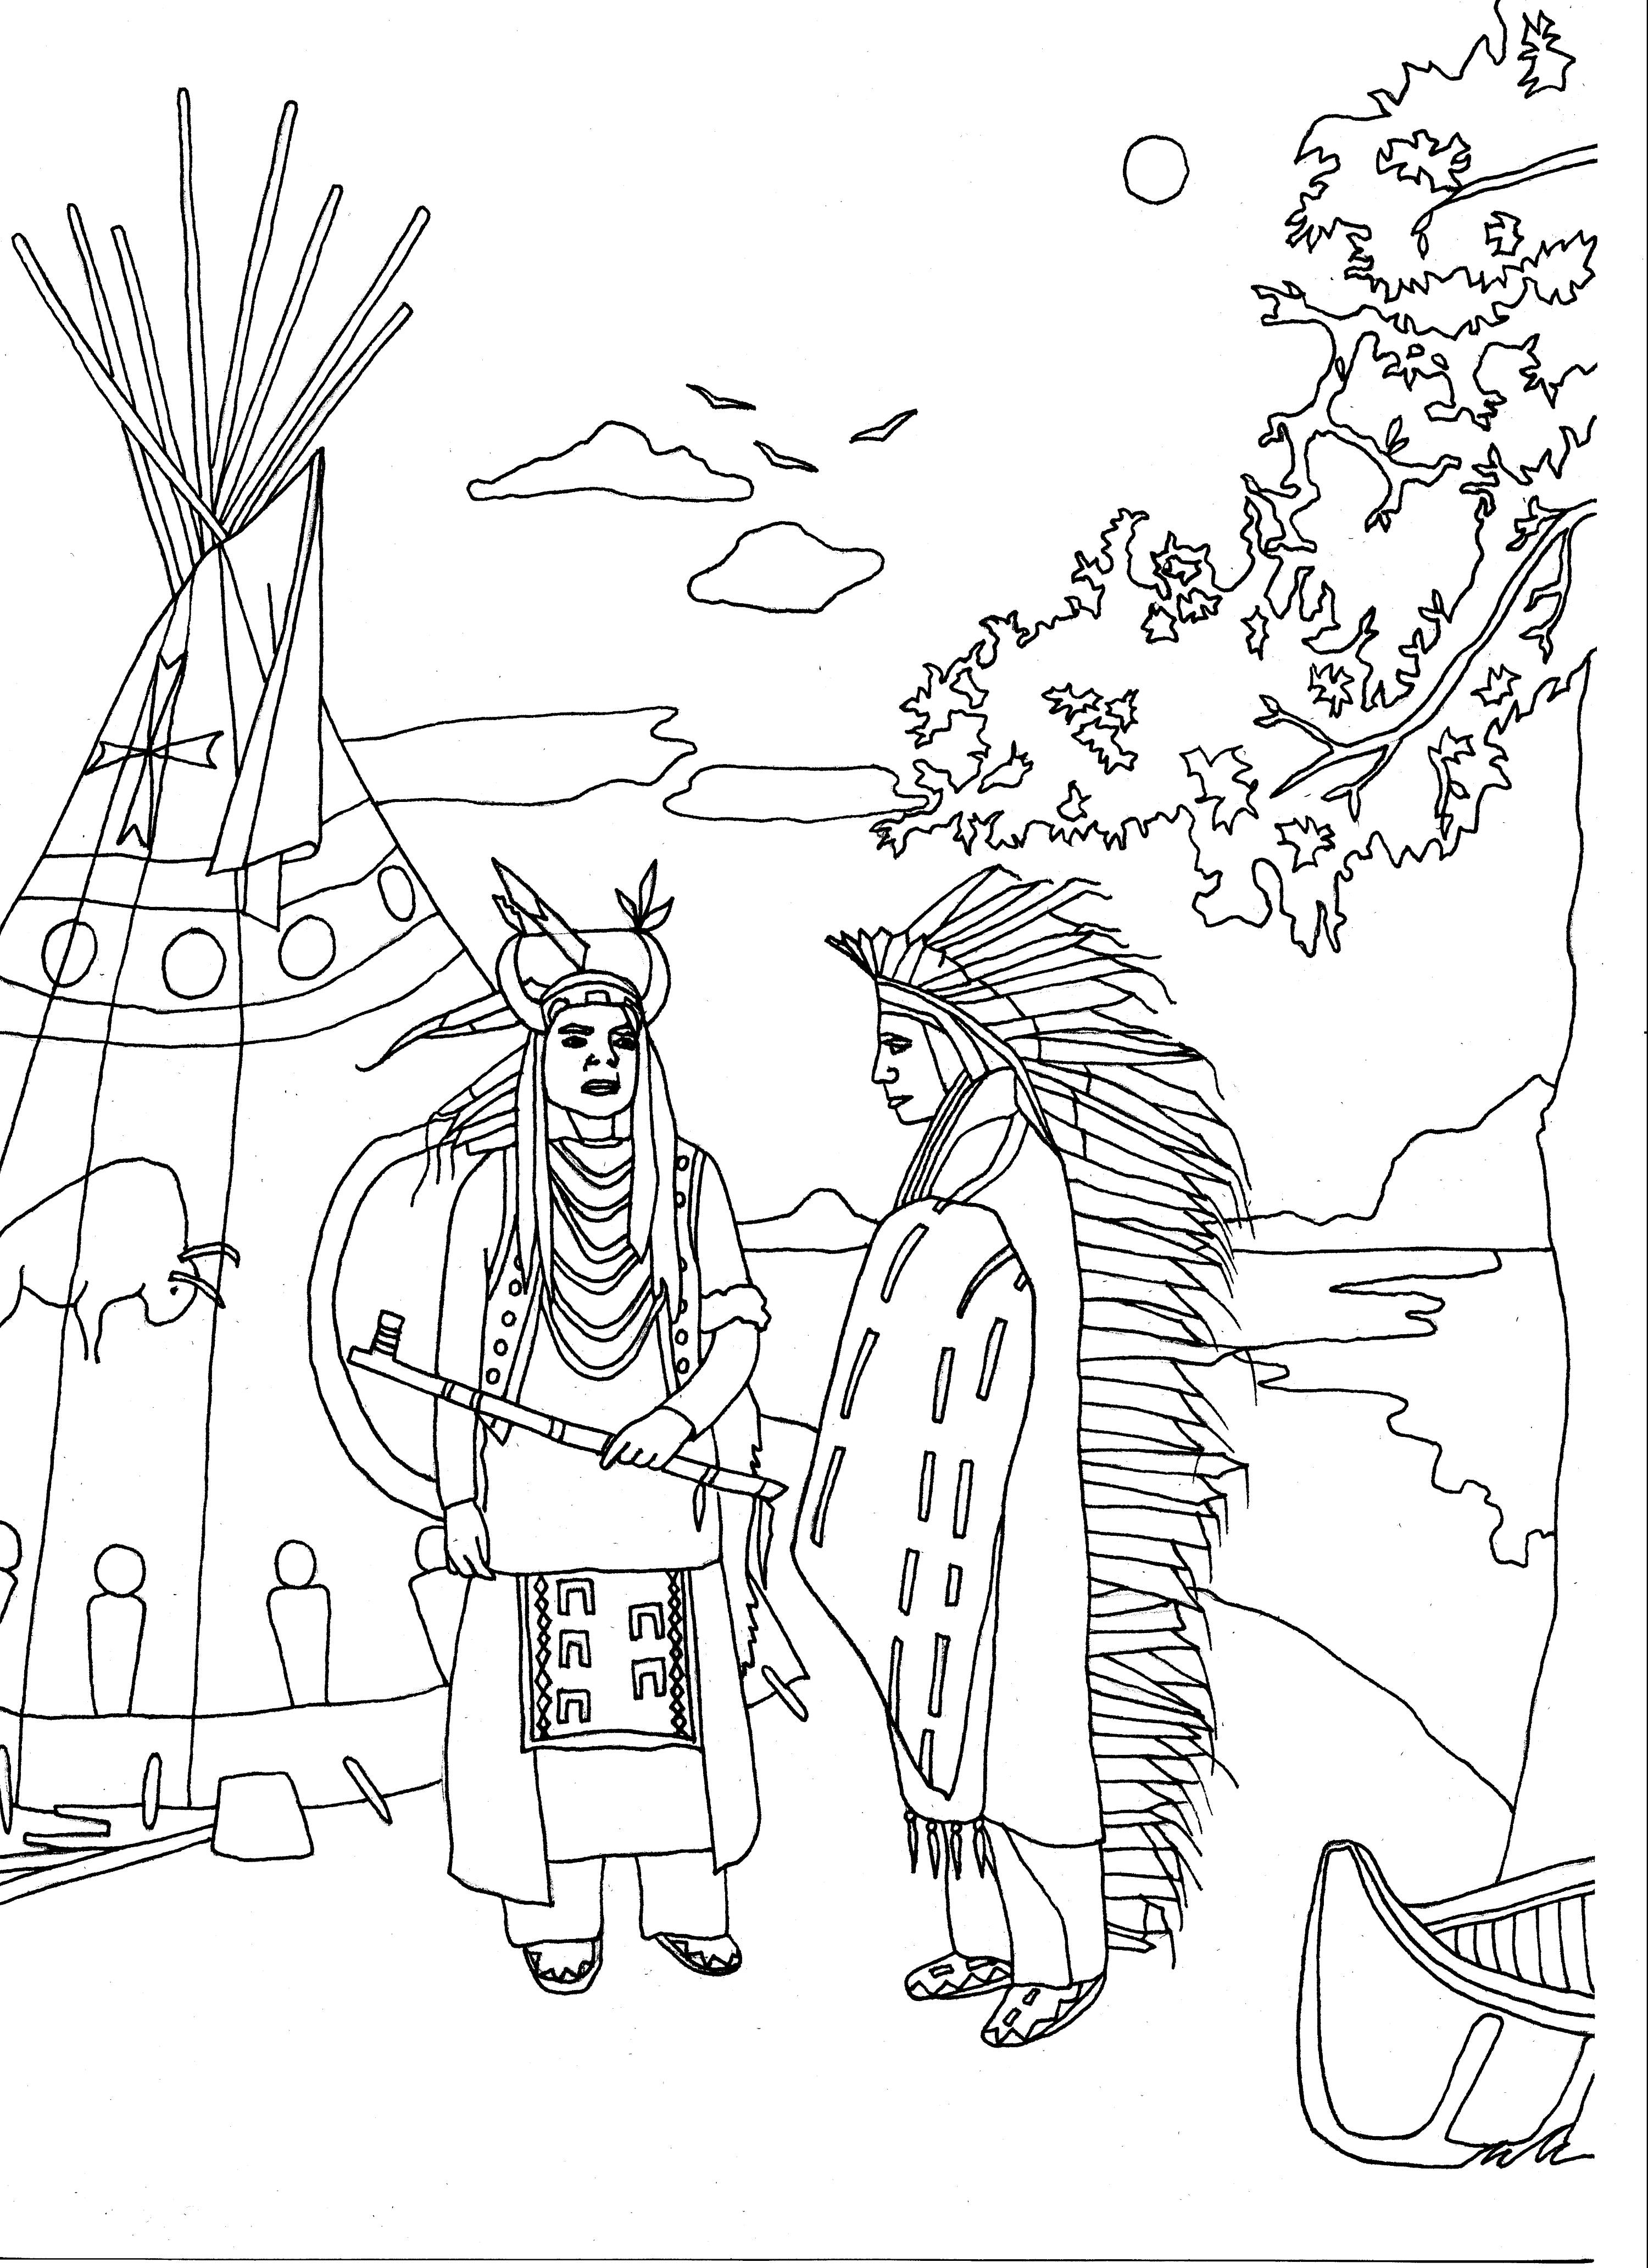 navajo indian coloring pages native american indian coloring pages for kids navajo indian pages coloring